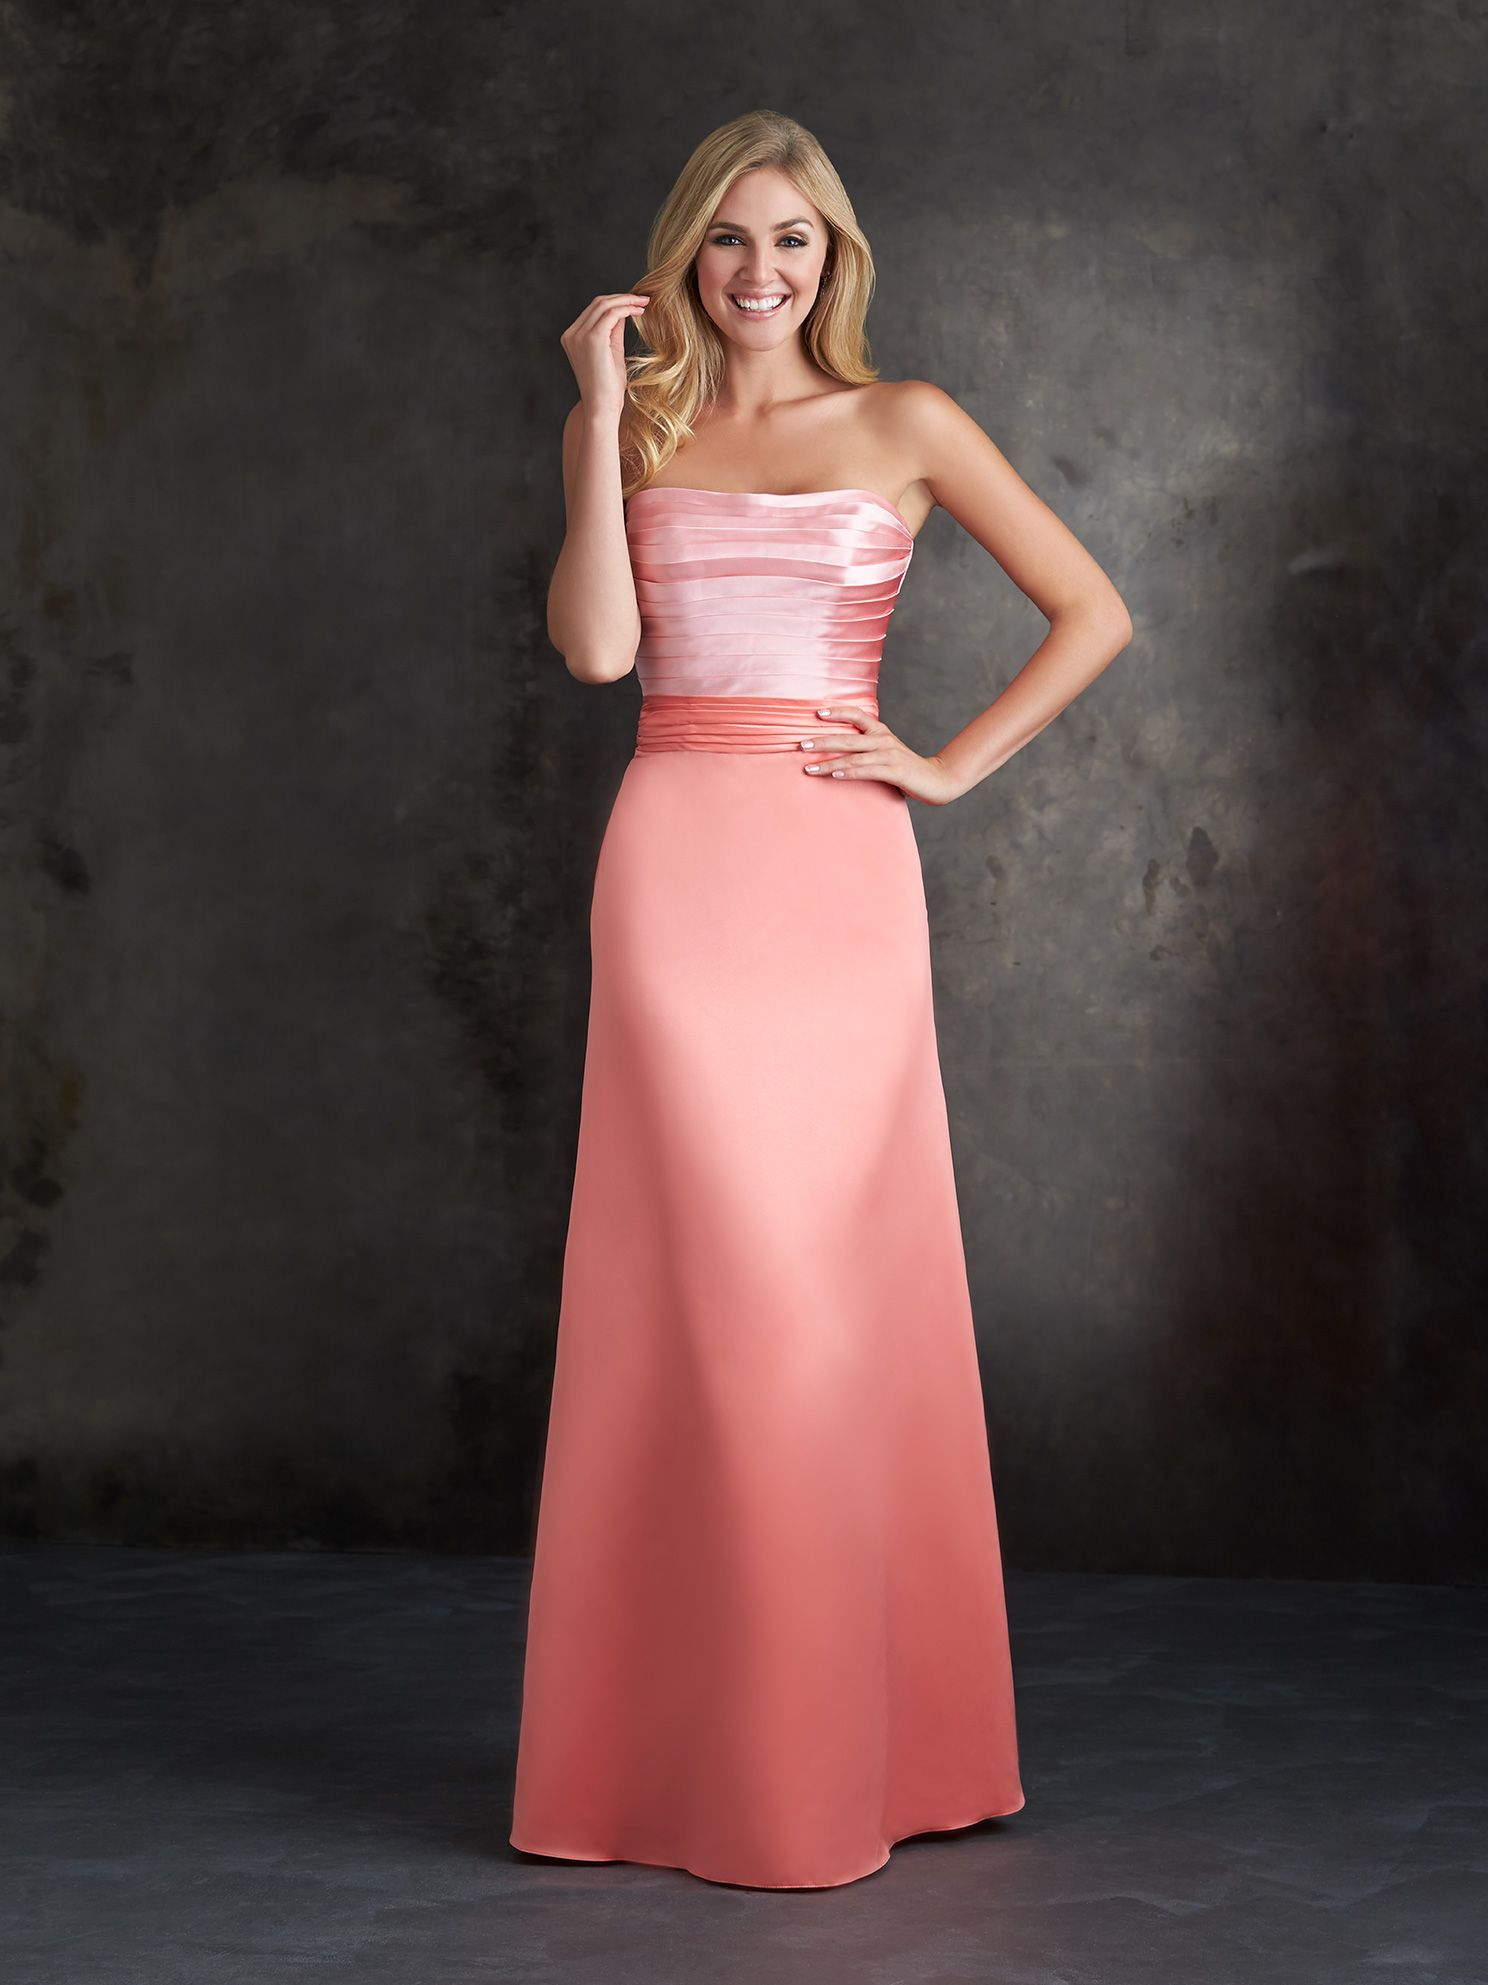 Allure Bridesmaids STYLE: 1401 This A-line dress features ruched ...